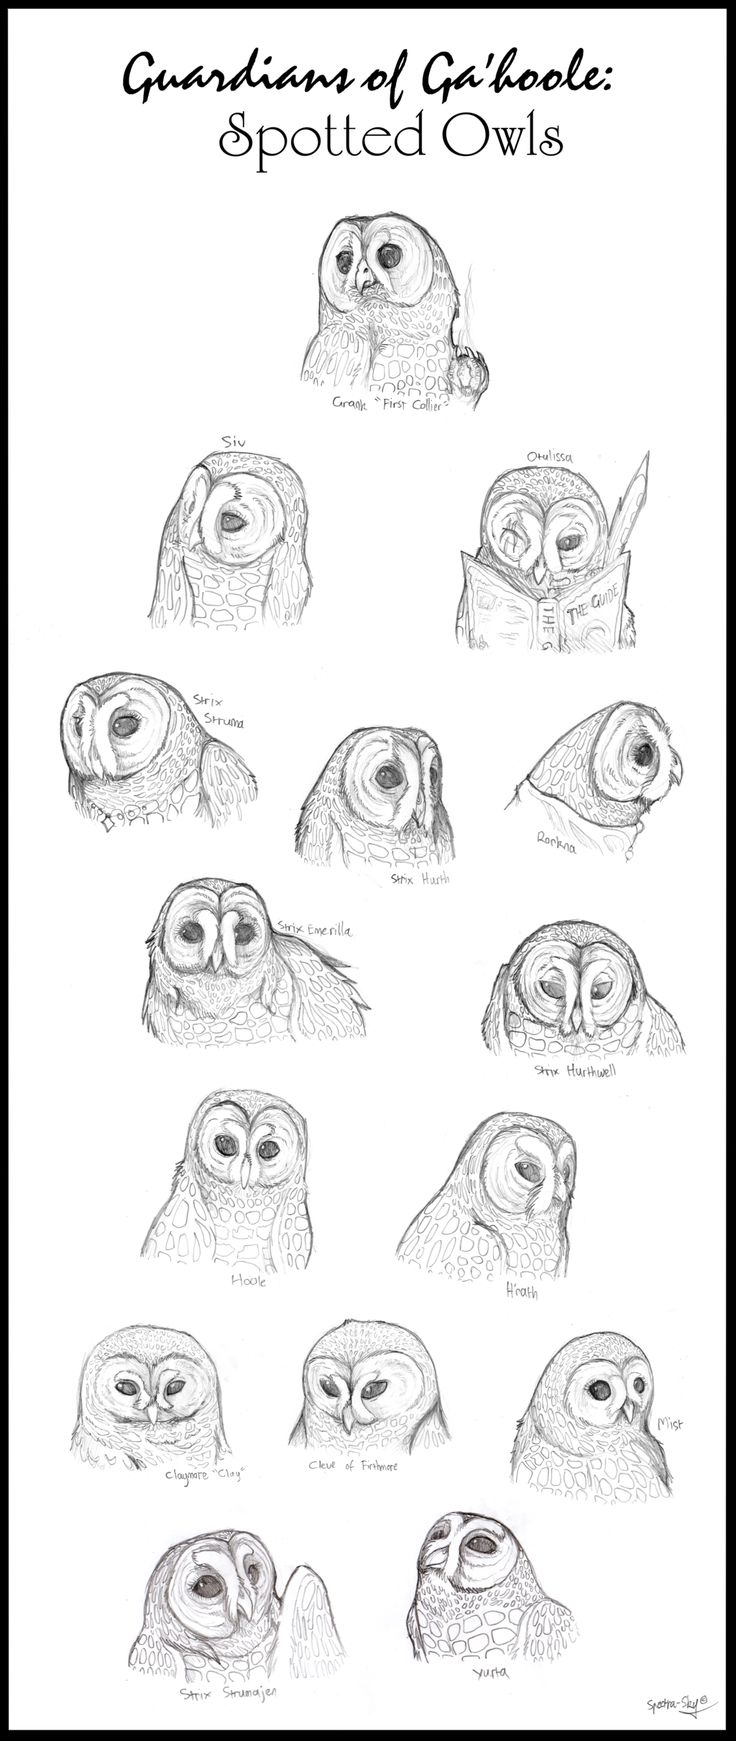 92 best owls of gal u0027 hool images on pinterest owls guardians of